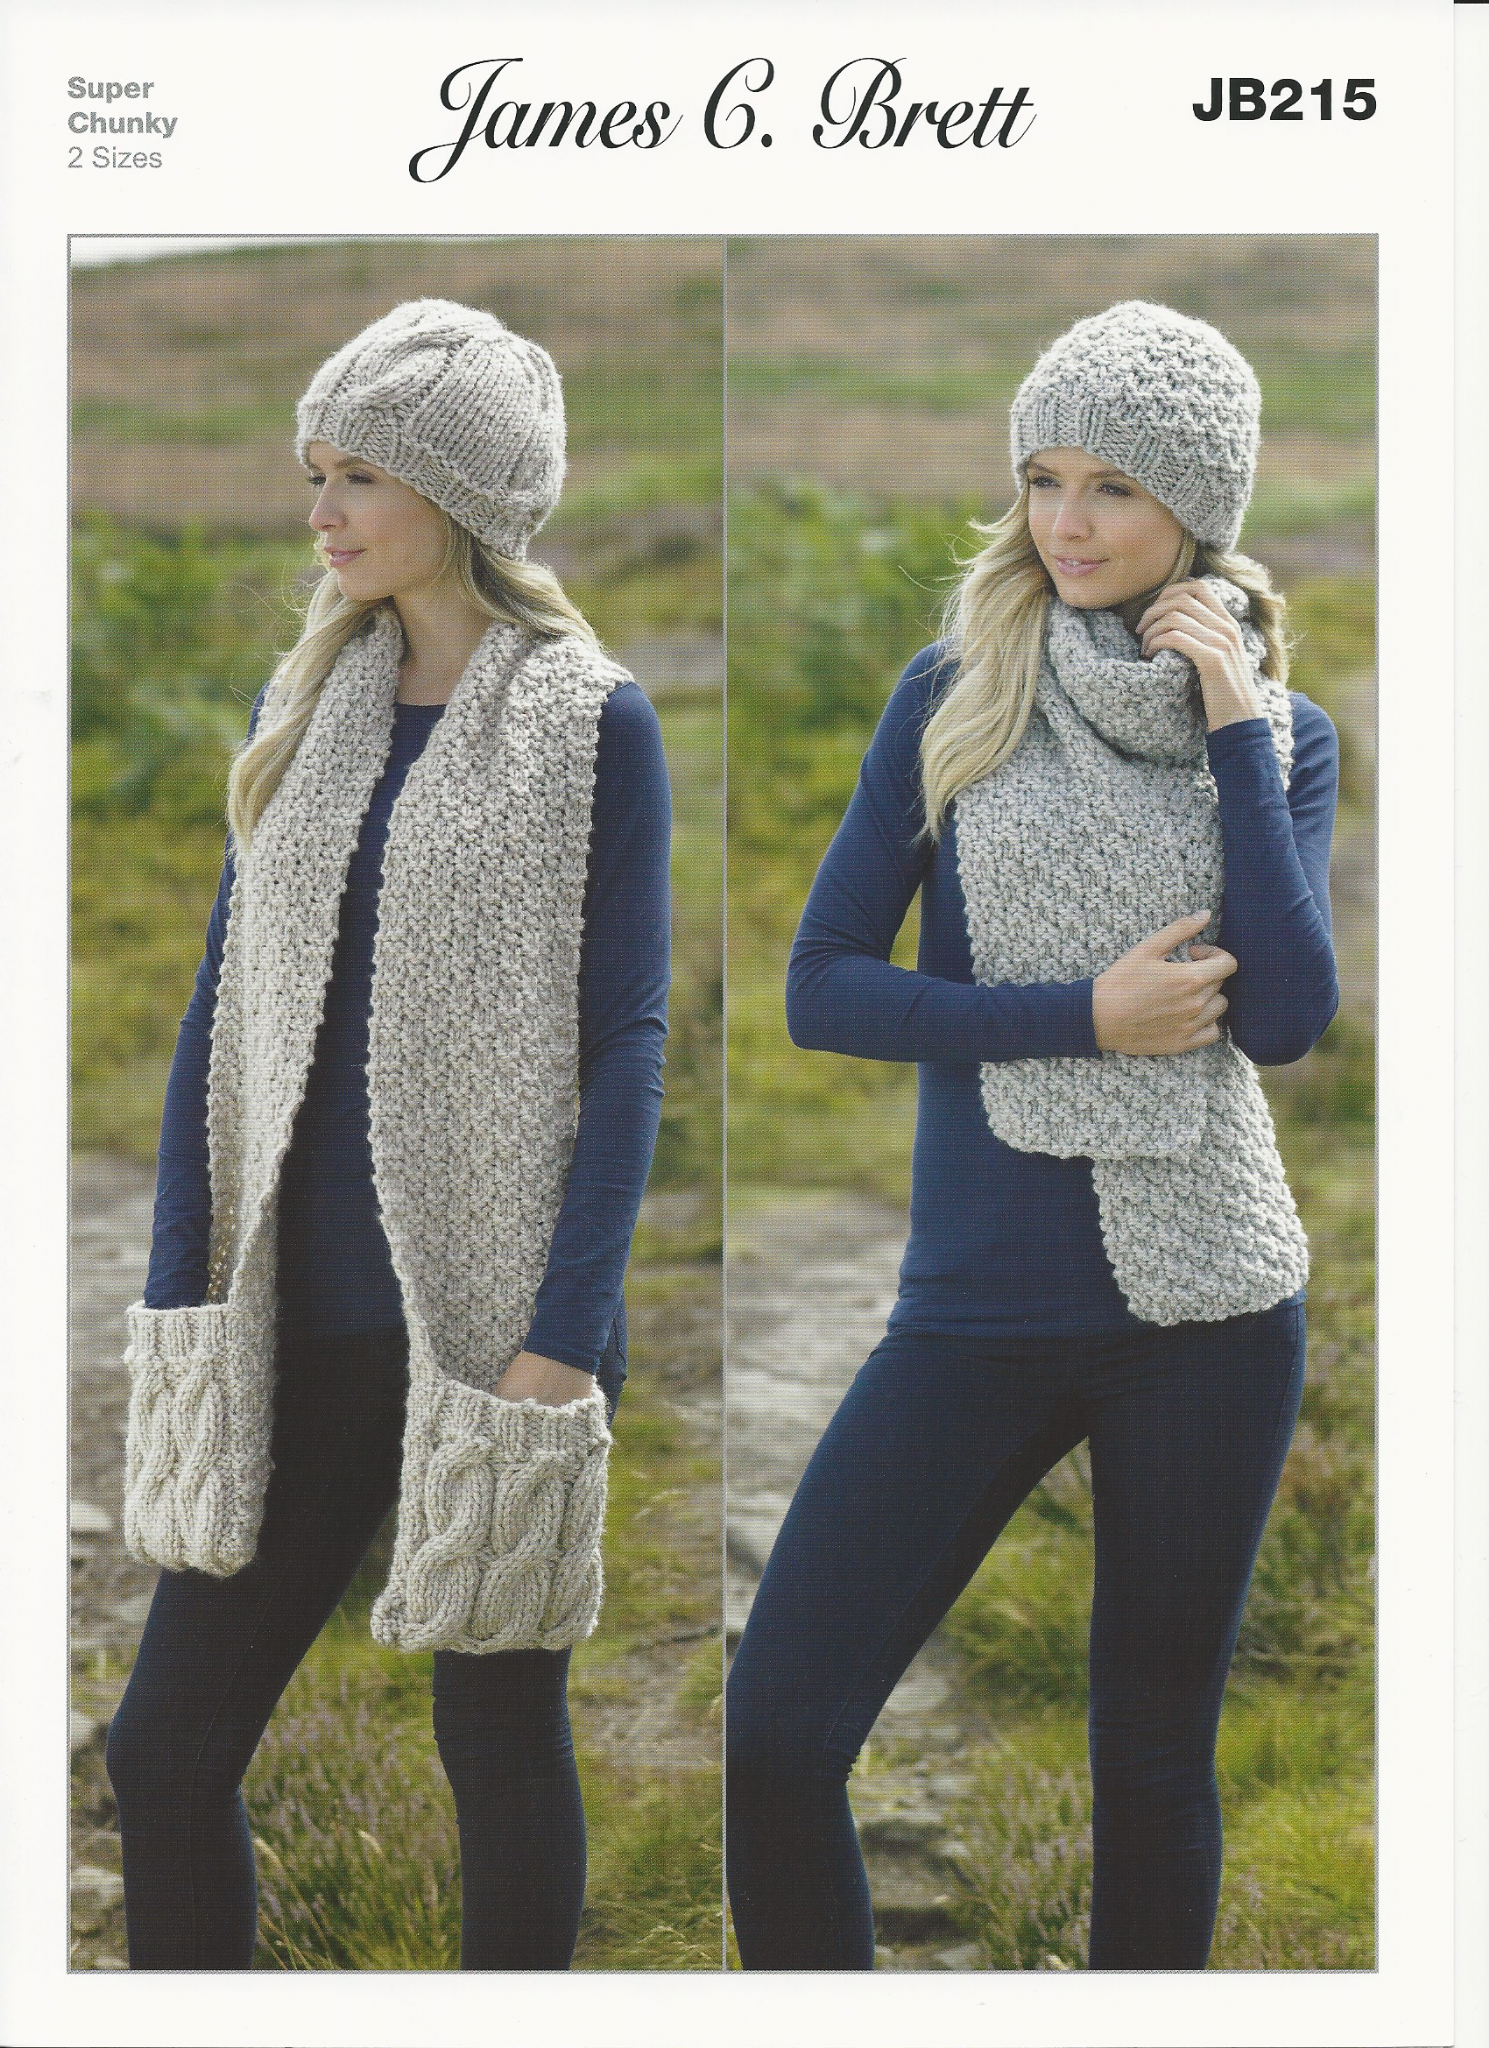 James C Brett Ladies Hats and Scarves Super Chunky Knitting Pattern ...